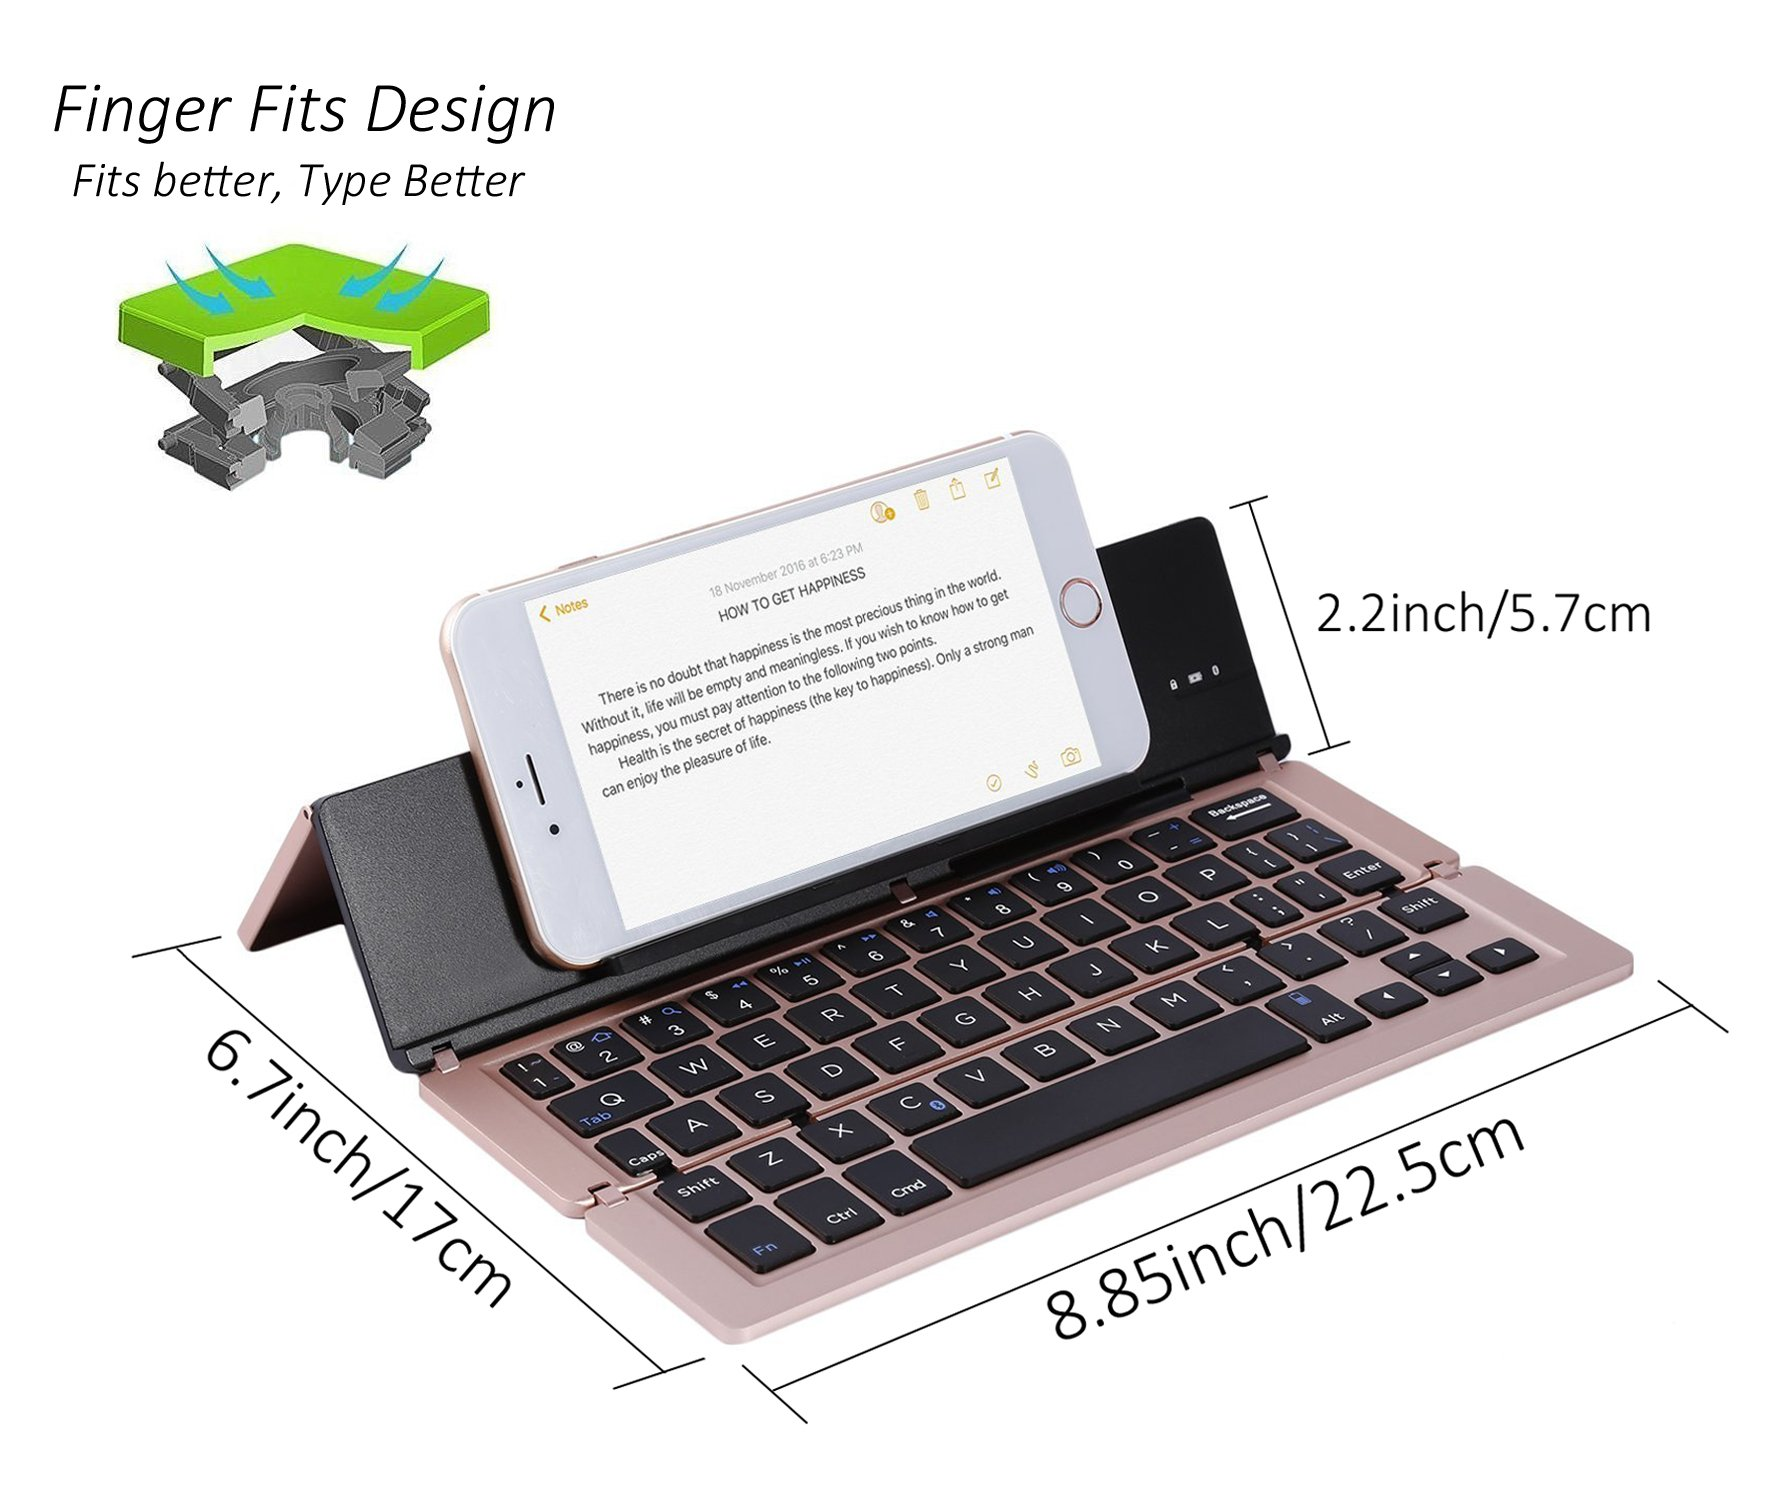 Lucky2Buy Foldable Portable Bluetooth Wireless Keyboard with Kickstand Holder For iPhone, iPad, Andriod Smartphone and Windows Tablet - Rose Gold by Lucky2Buy (Image #4)